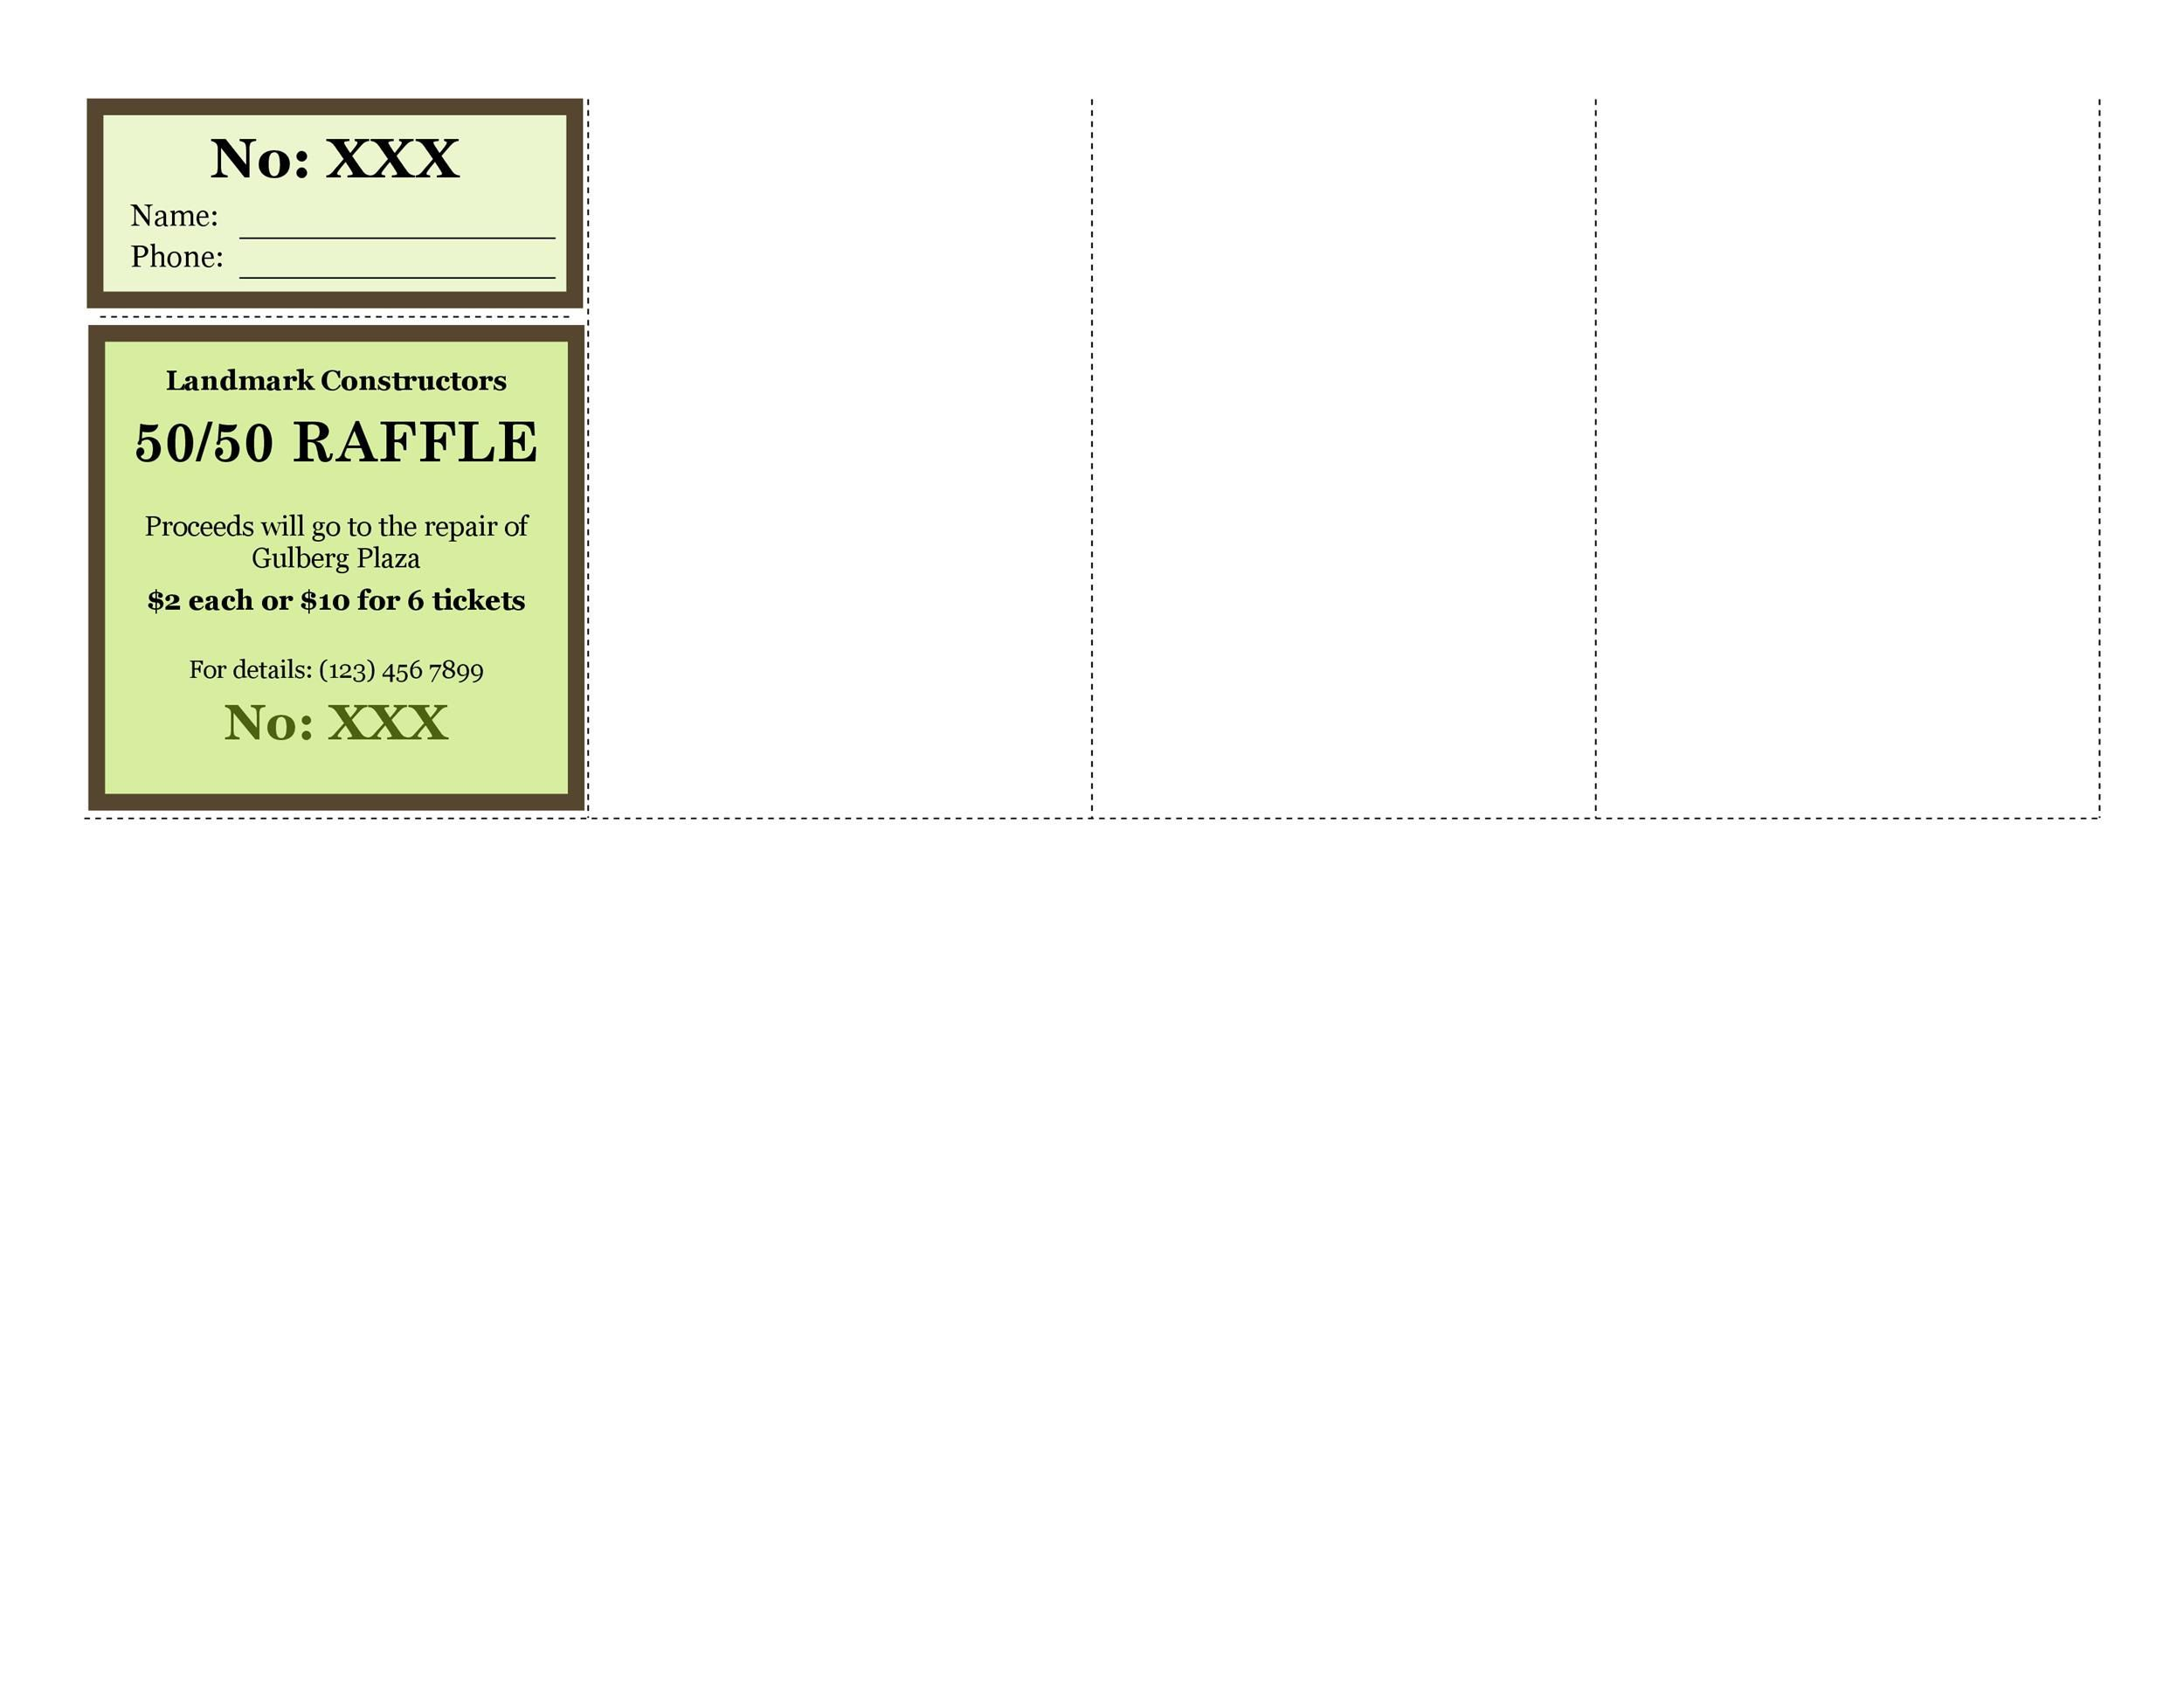 009 Magnificent Raffle Ticket Template Word Picture  8 Per Page FormatFull